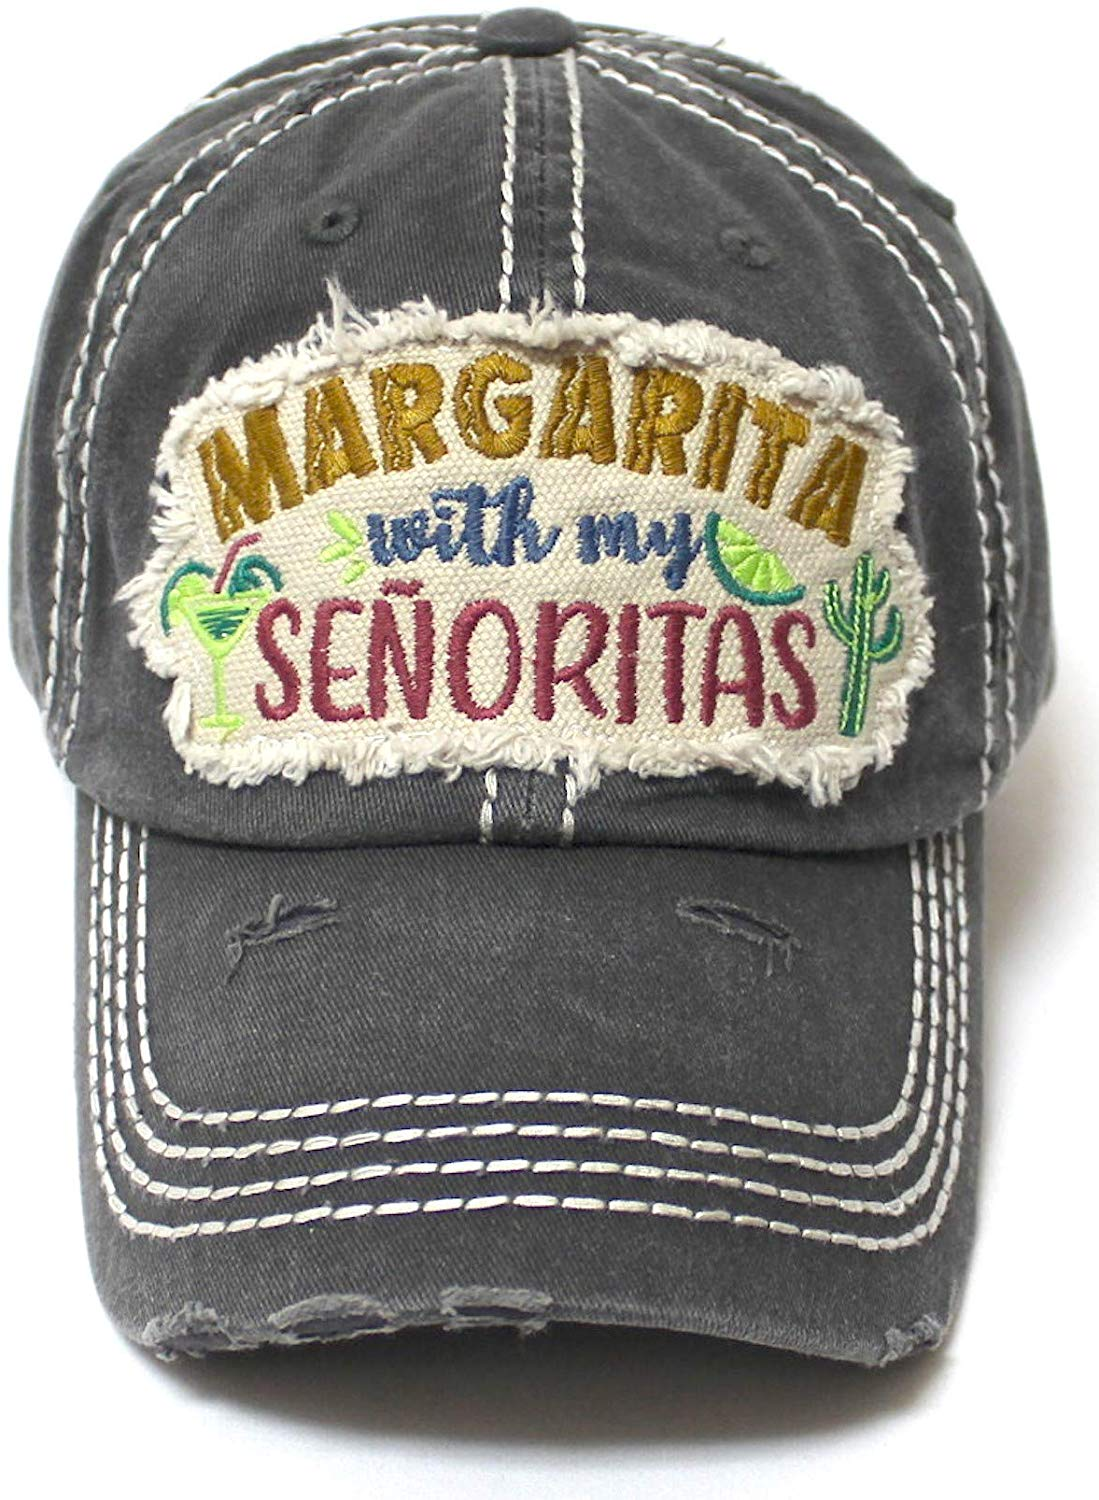 Women's Ballcap Margarita with My Senoritas Beach Themed Patch Embroidery Hat, Vintage Black - Caps 'N Vintage